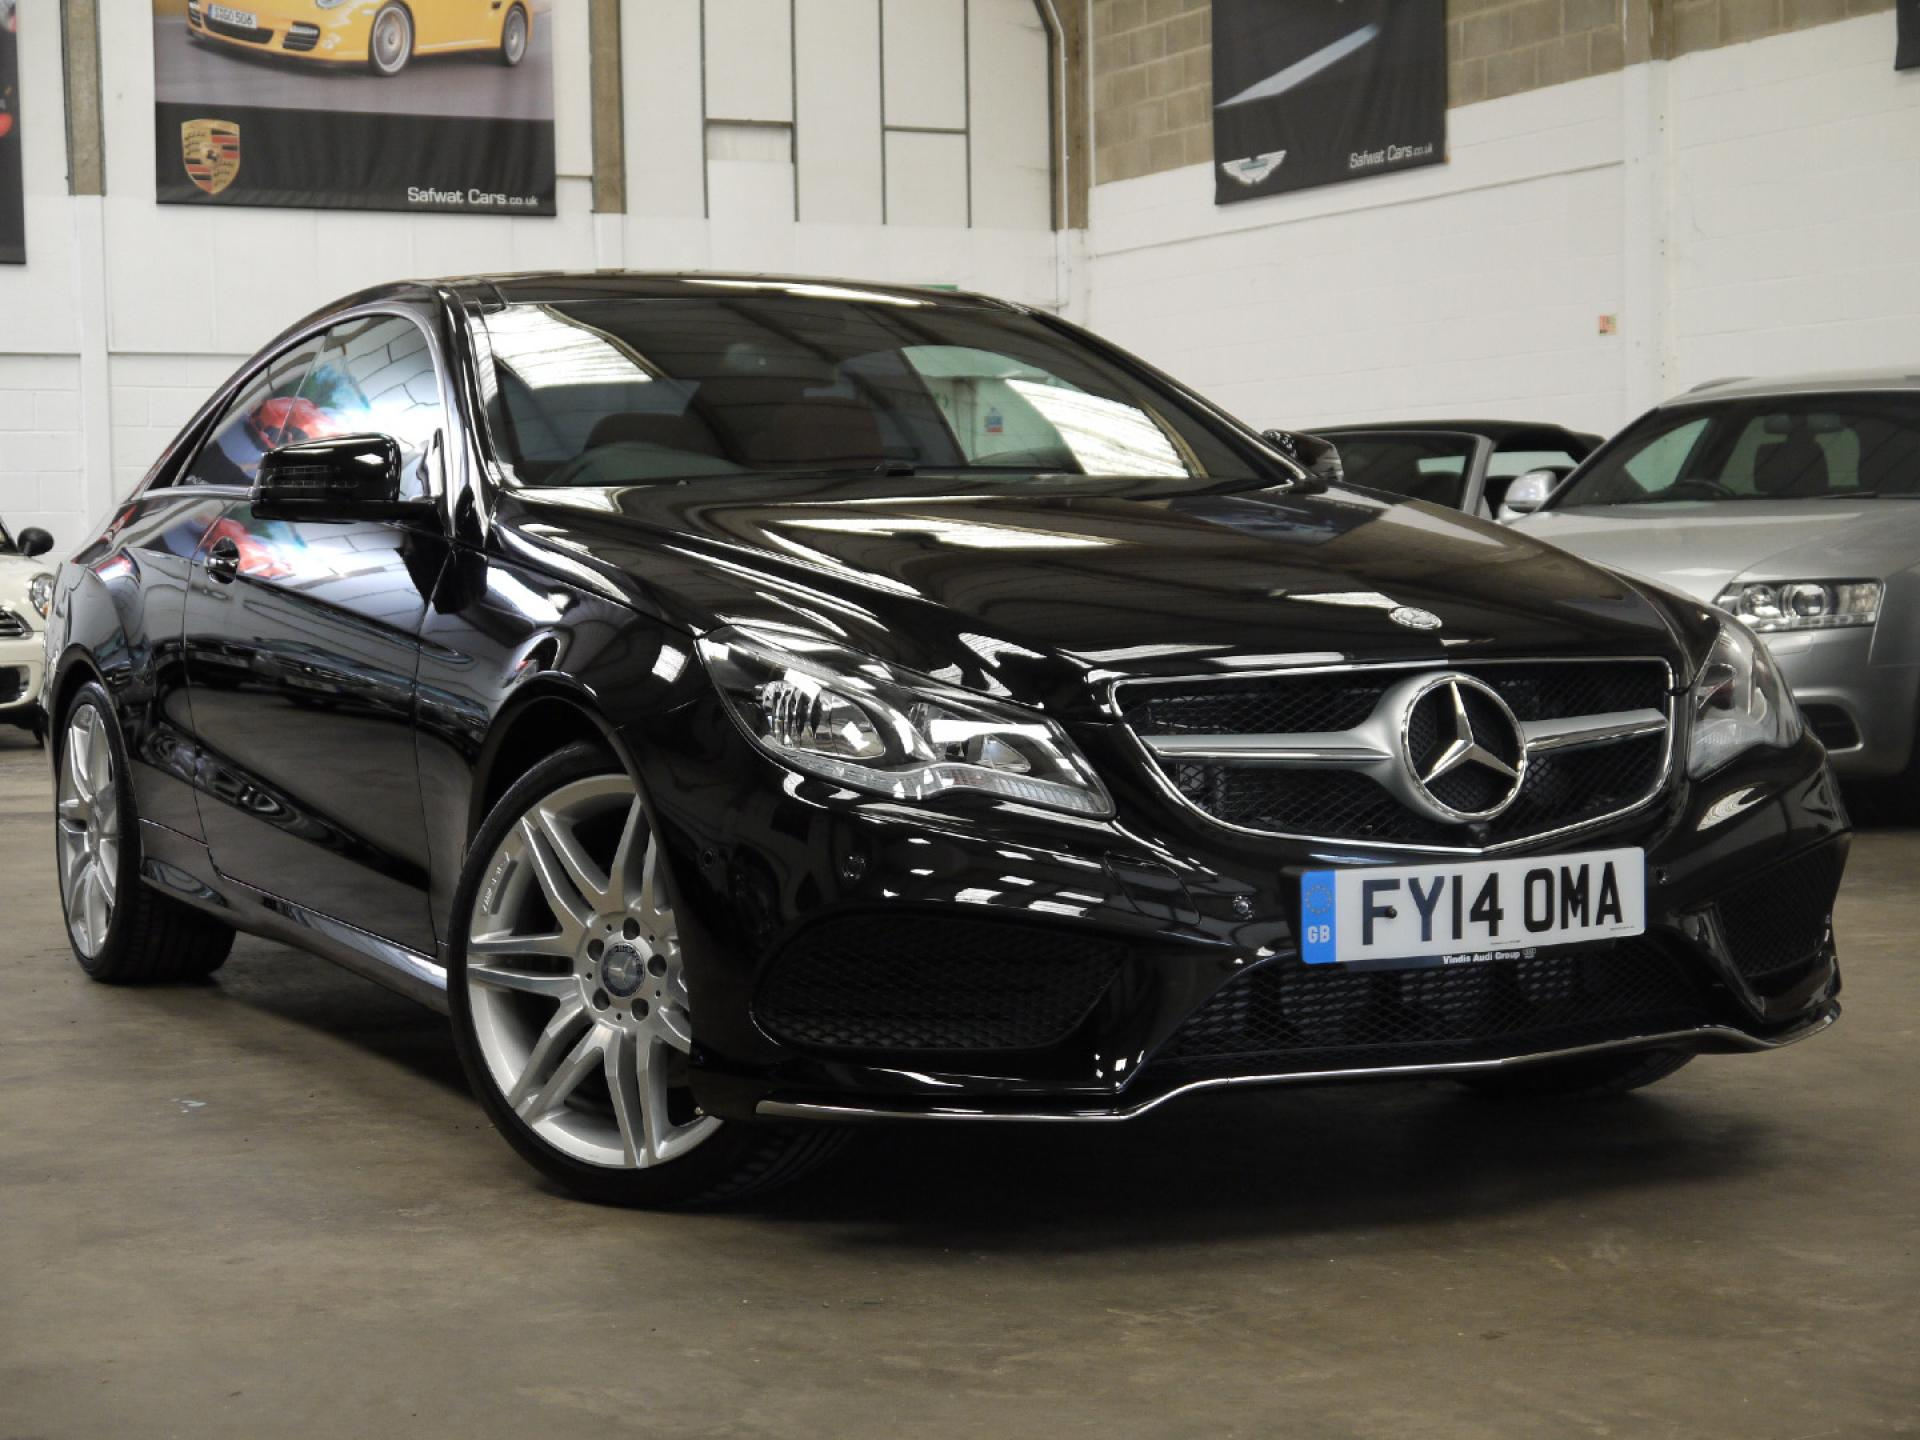 Safwat cars prestige cars southend on sea for Mercedes benz e350 price 2014